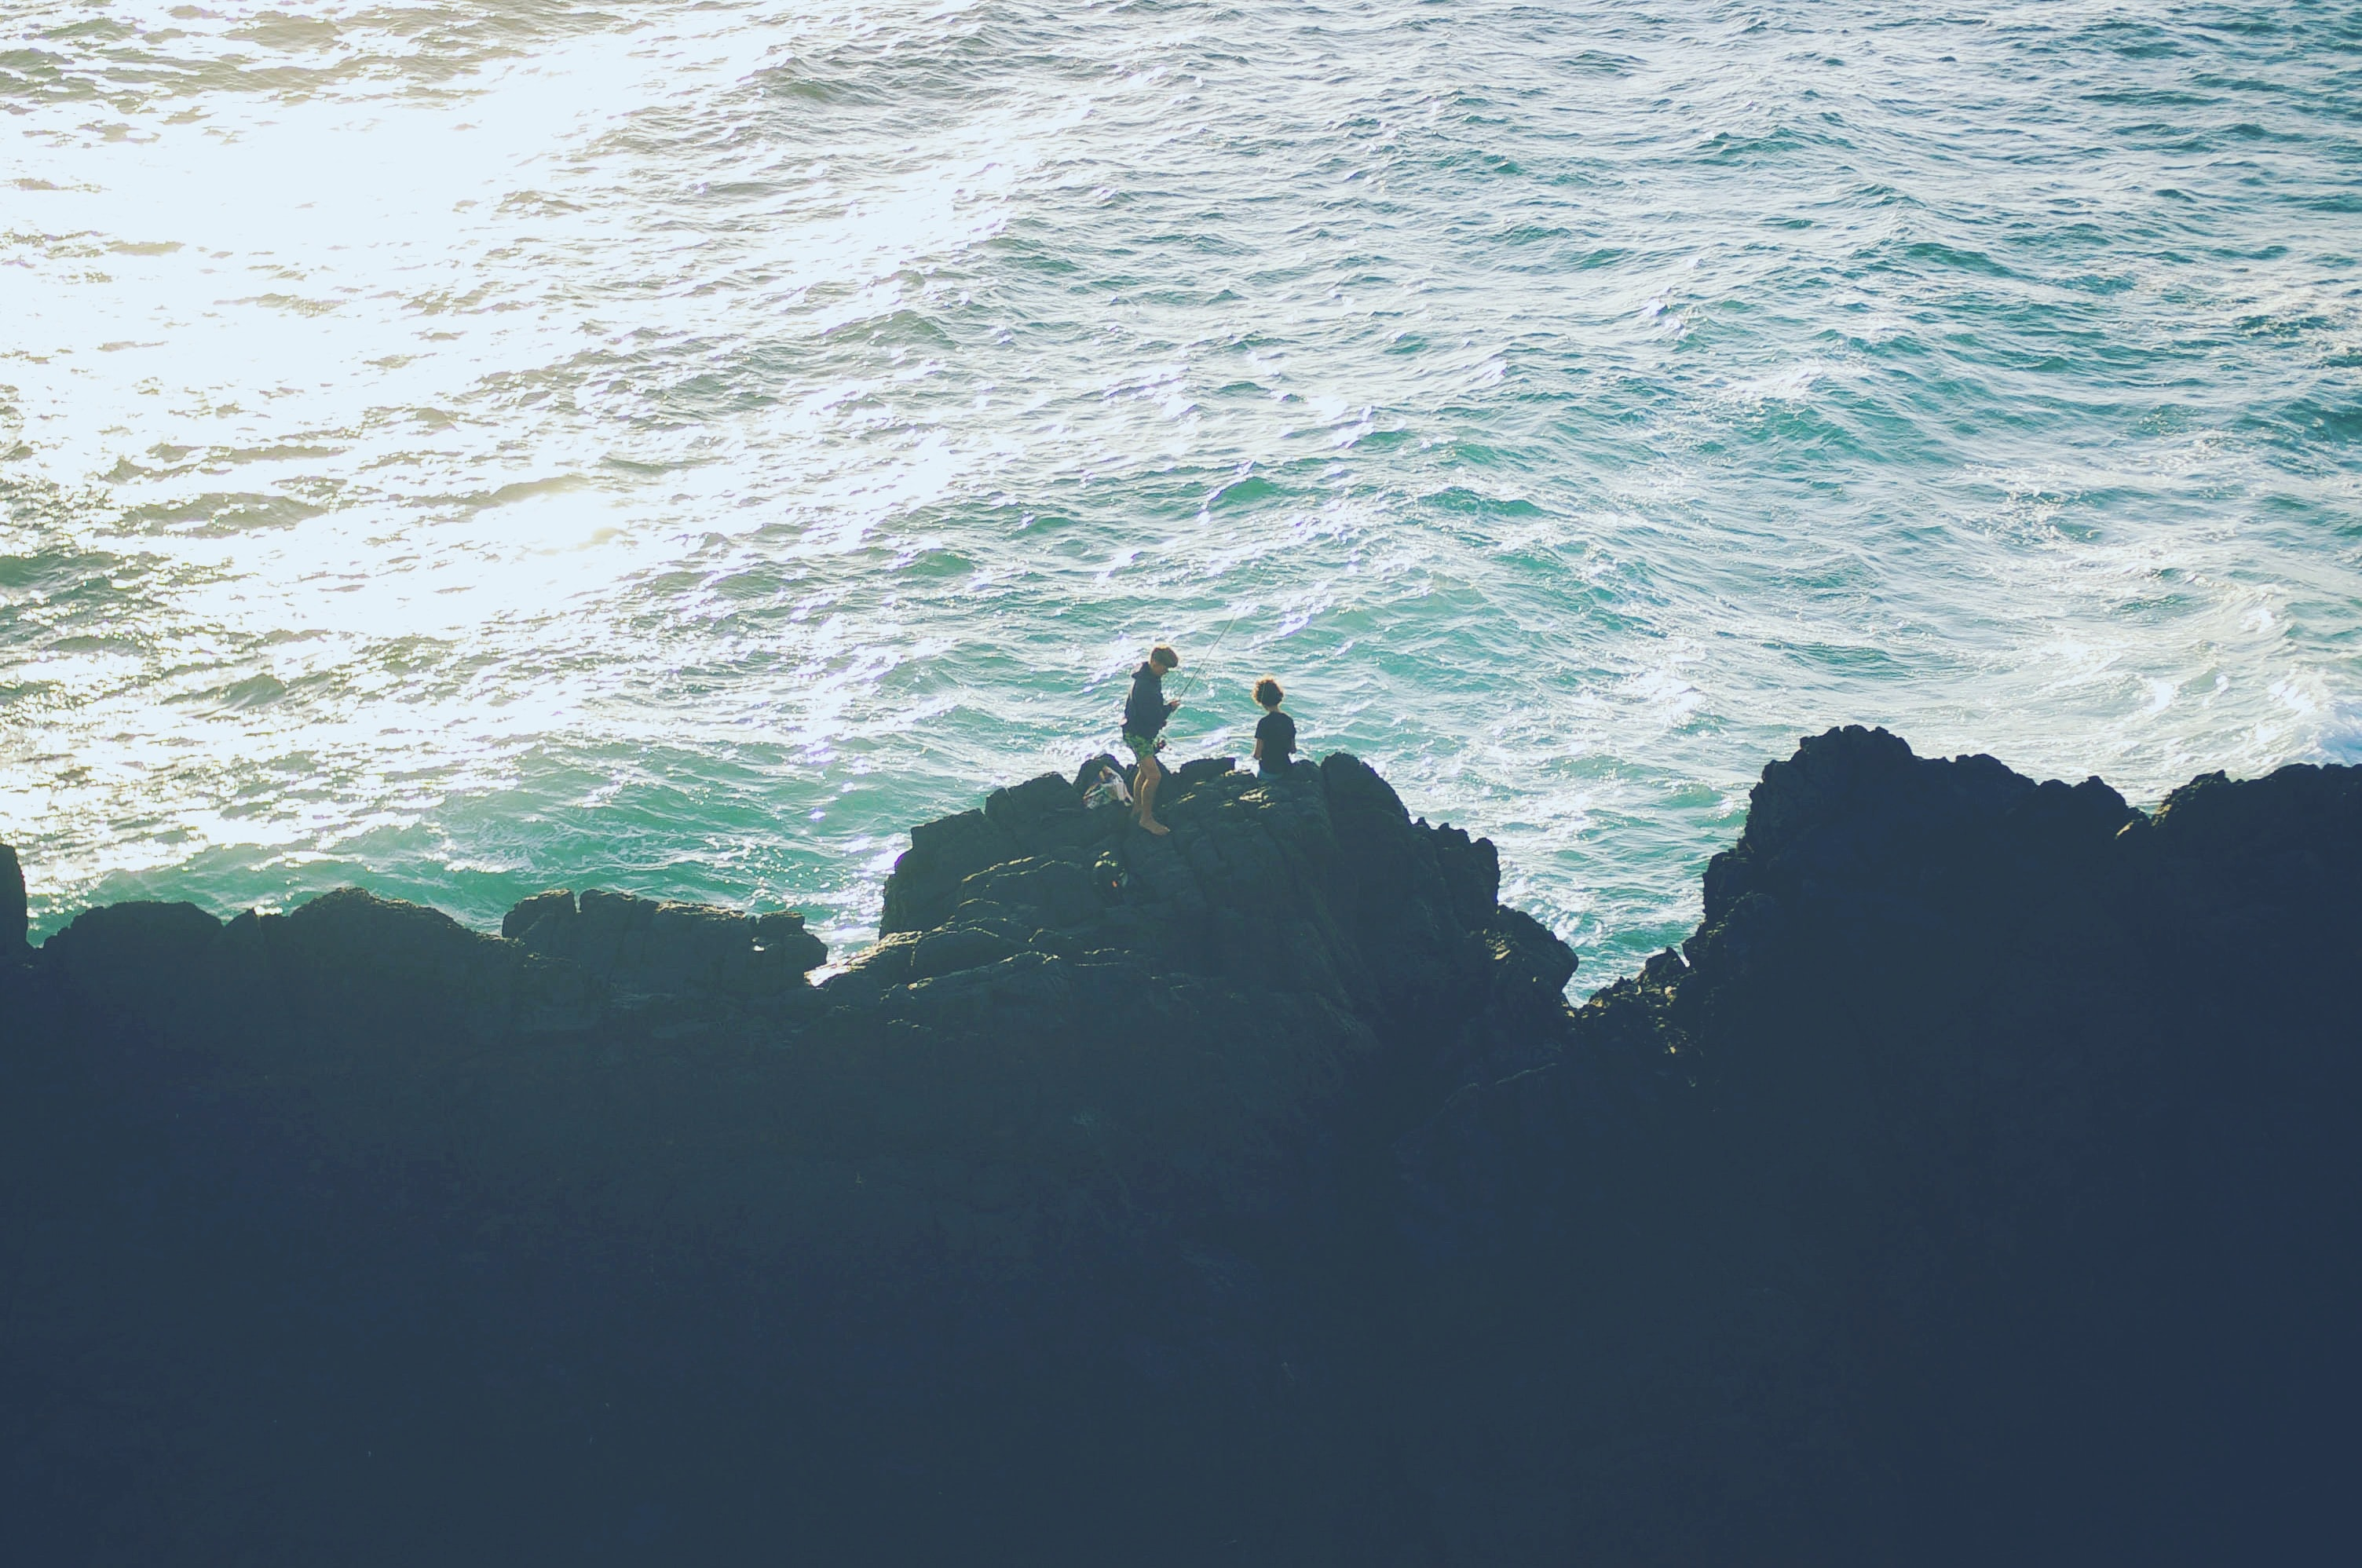 Two people stood on the rocks at the most easterly point of the Australian mainland, with the sea beneath them